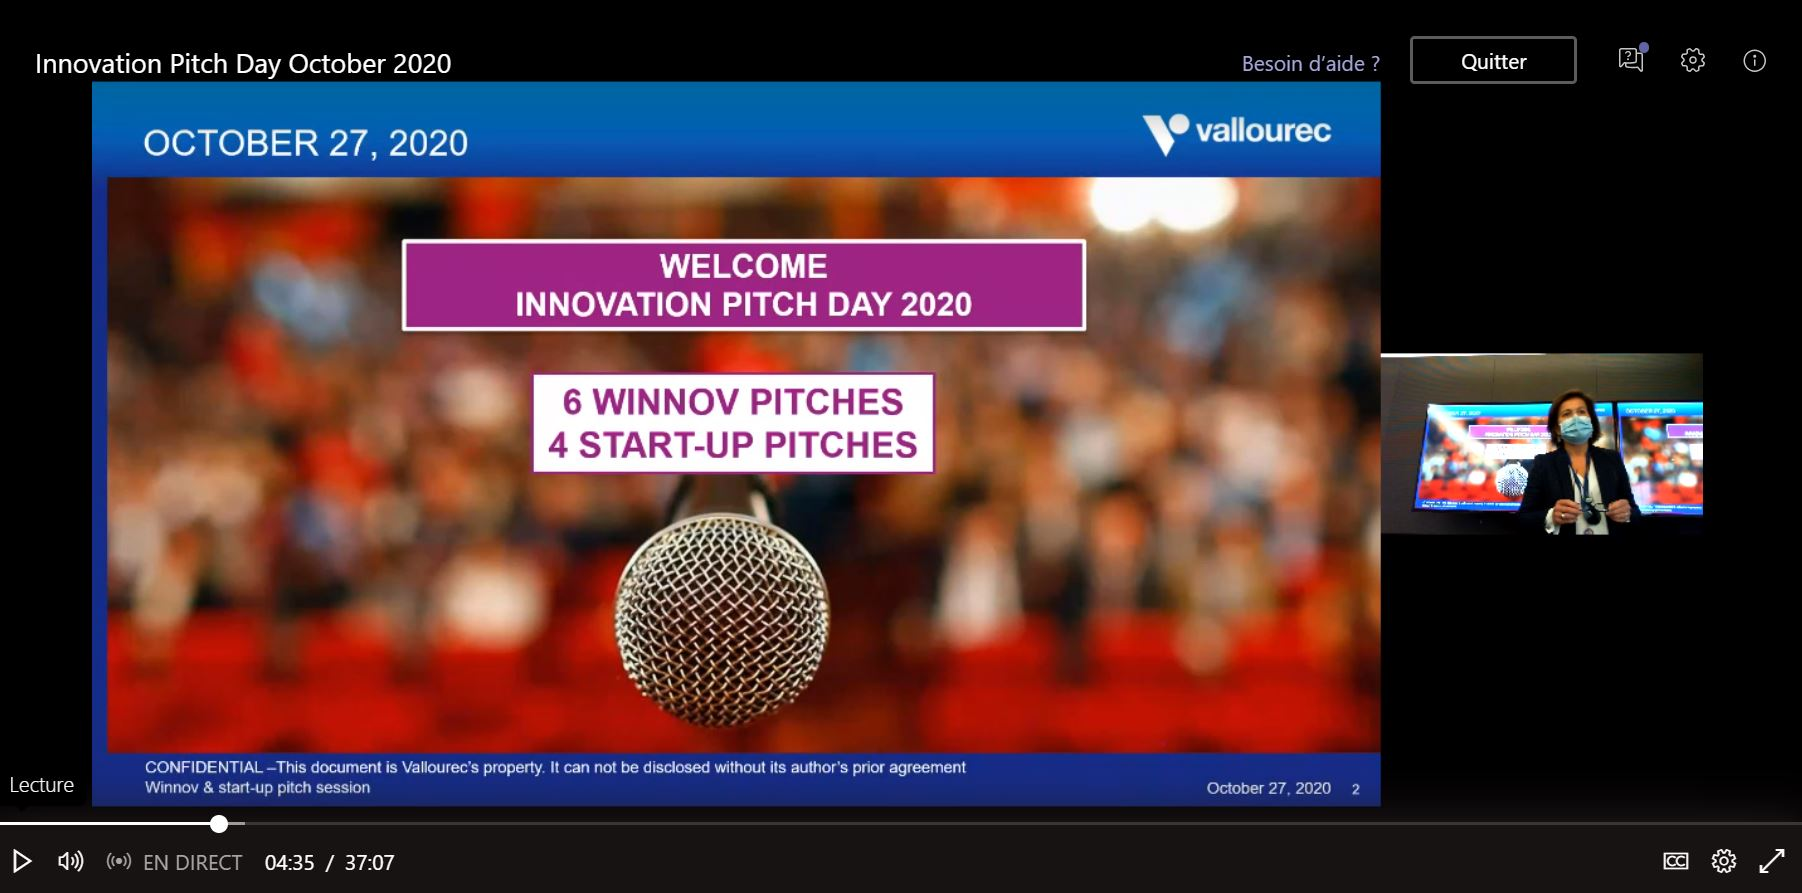 Pitch Day 2020: When innovation defies distance